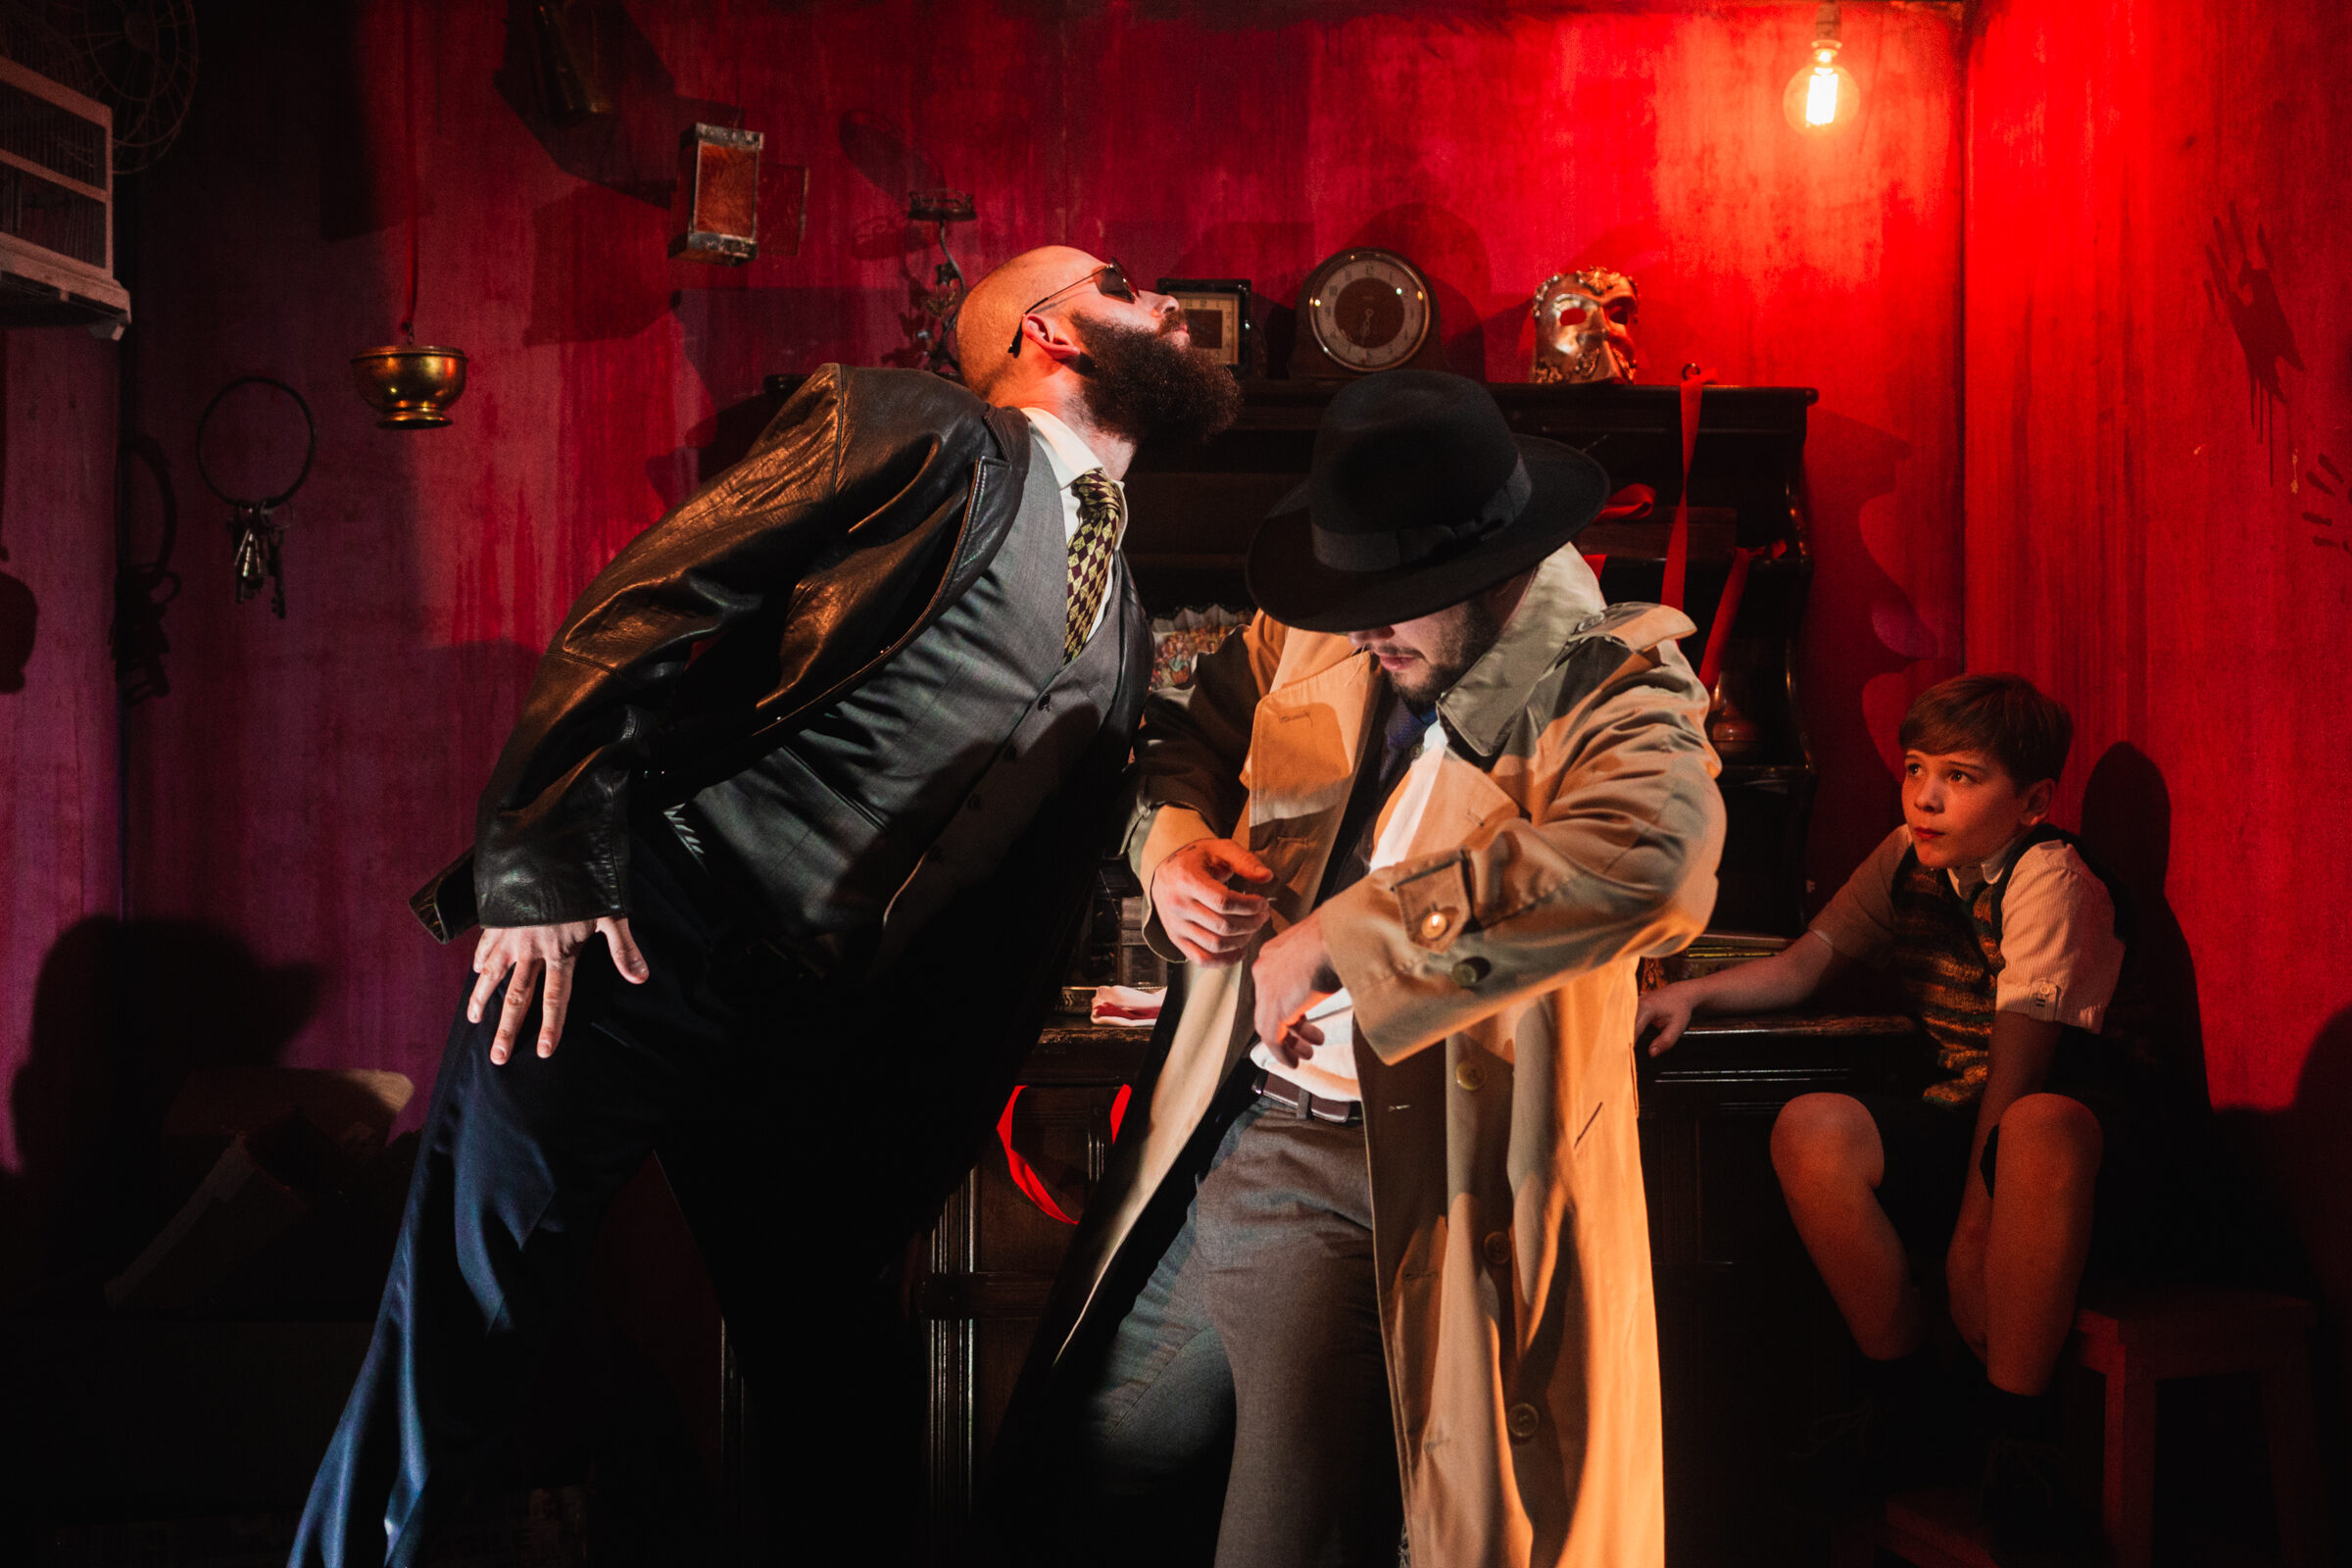 Bald white man with large beard leans as if to sniff the air. He is dressed in a shirt, trousers and waistcoat and is wearing a long black leather coat. Next to him is a white man wearing a black hat and long beige trench coat. They are in a theatre set with red walls, low lighting and a lightbulb. A boy sits in the corner of the room at the back.